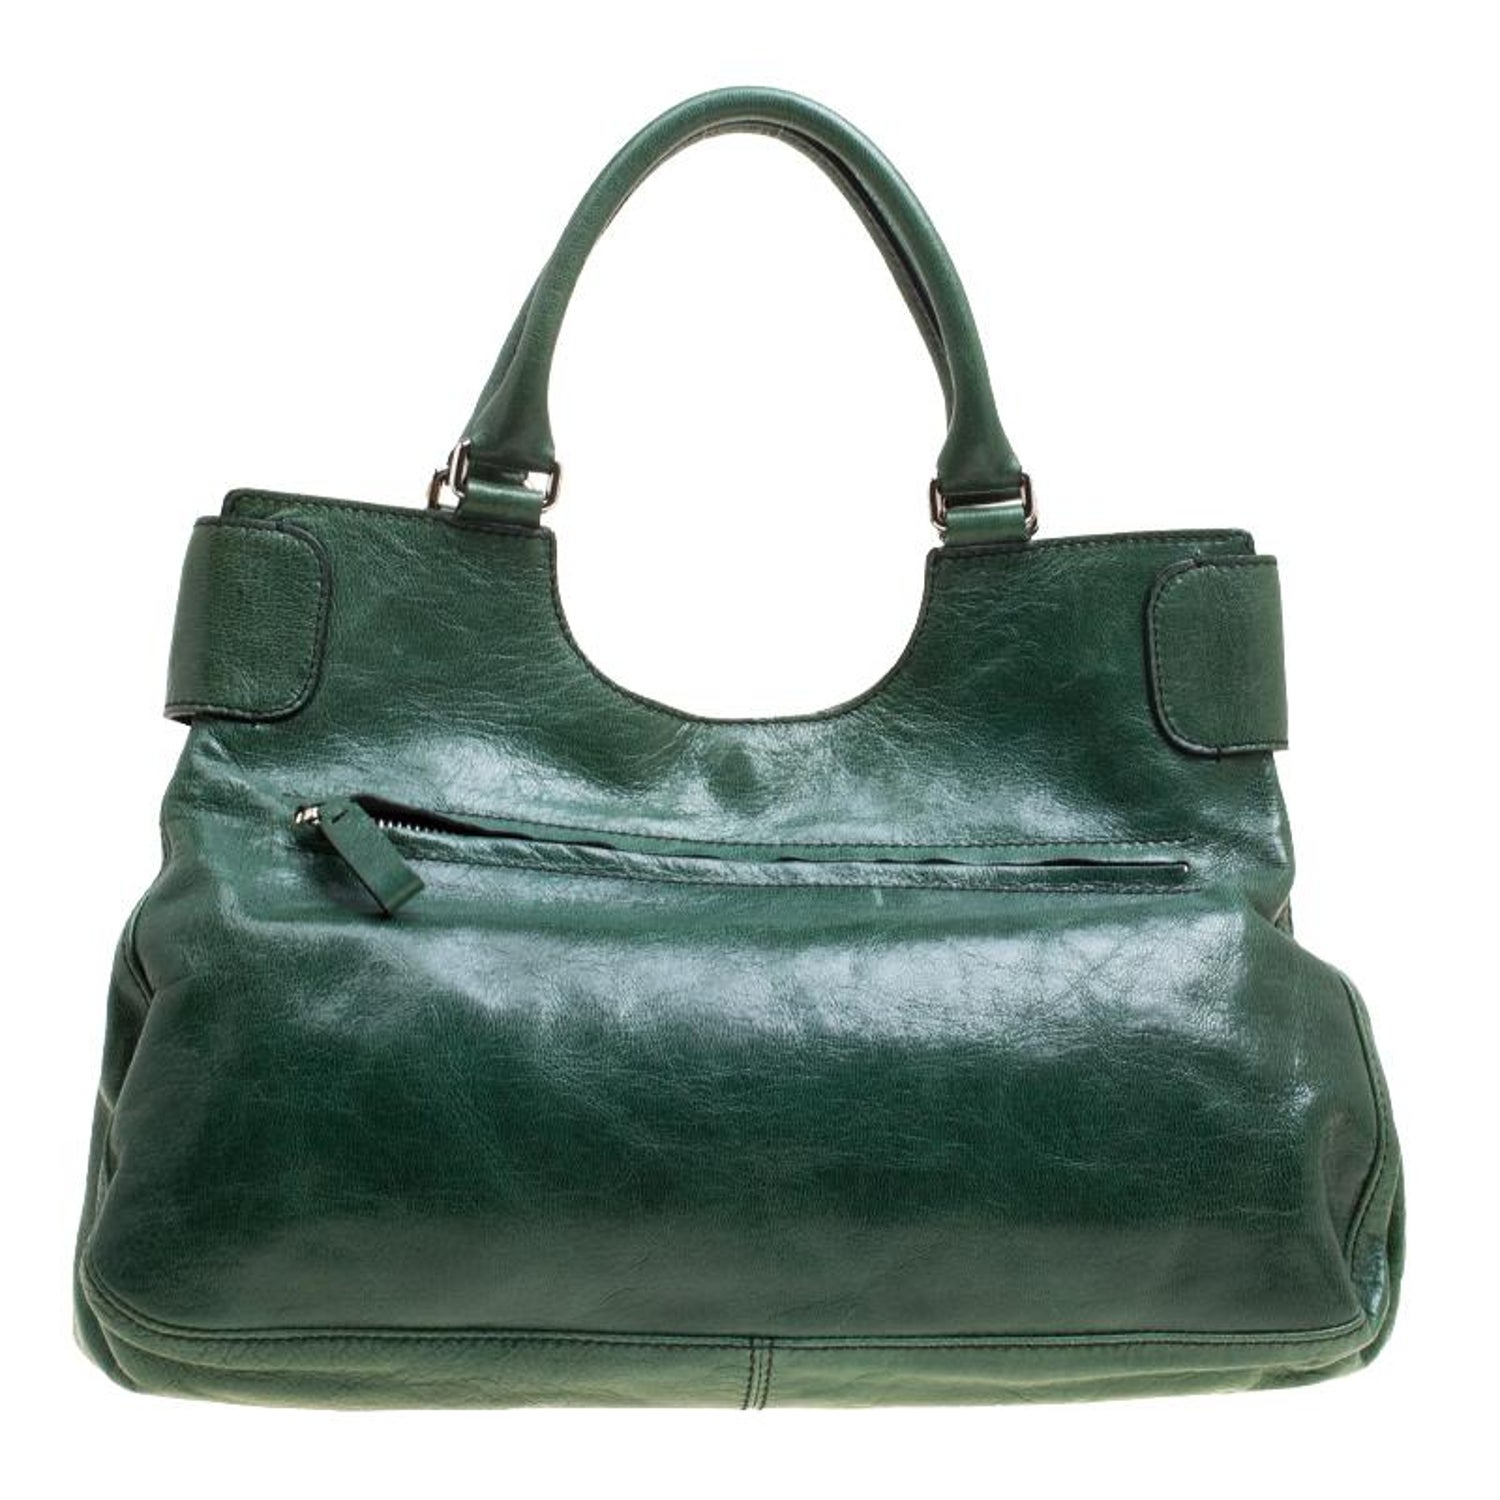 13d07455b4c Valentino Green Leather Crystal Catch Shoulder Bag For Sale at 1stdibs